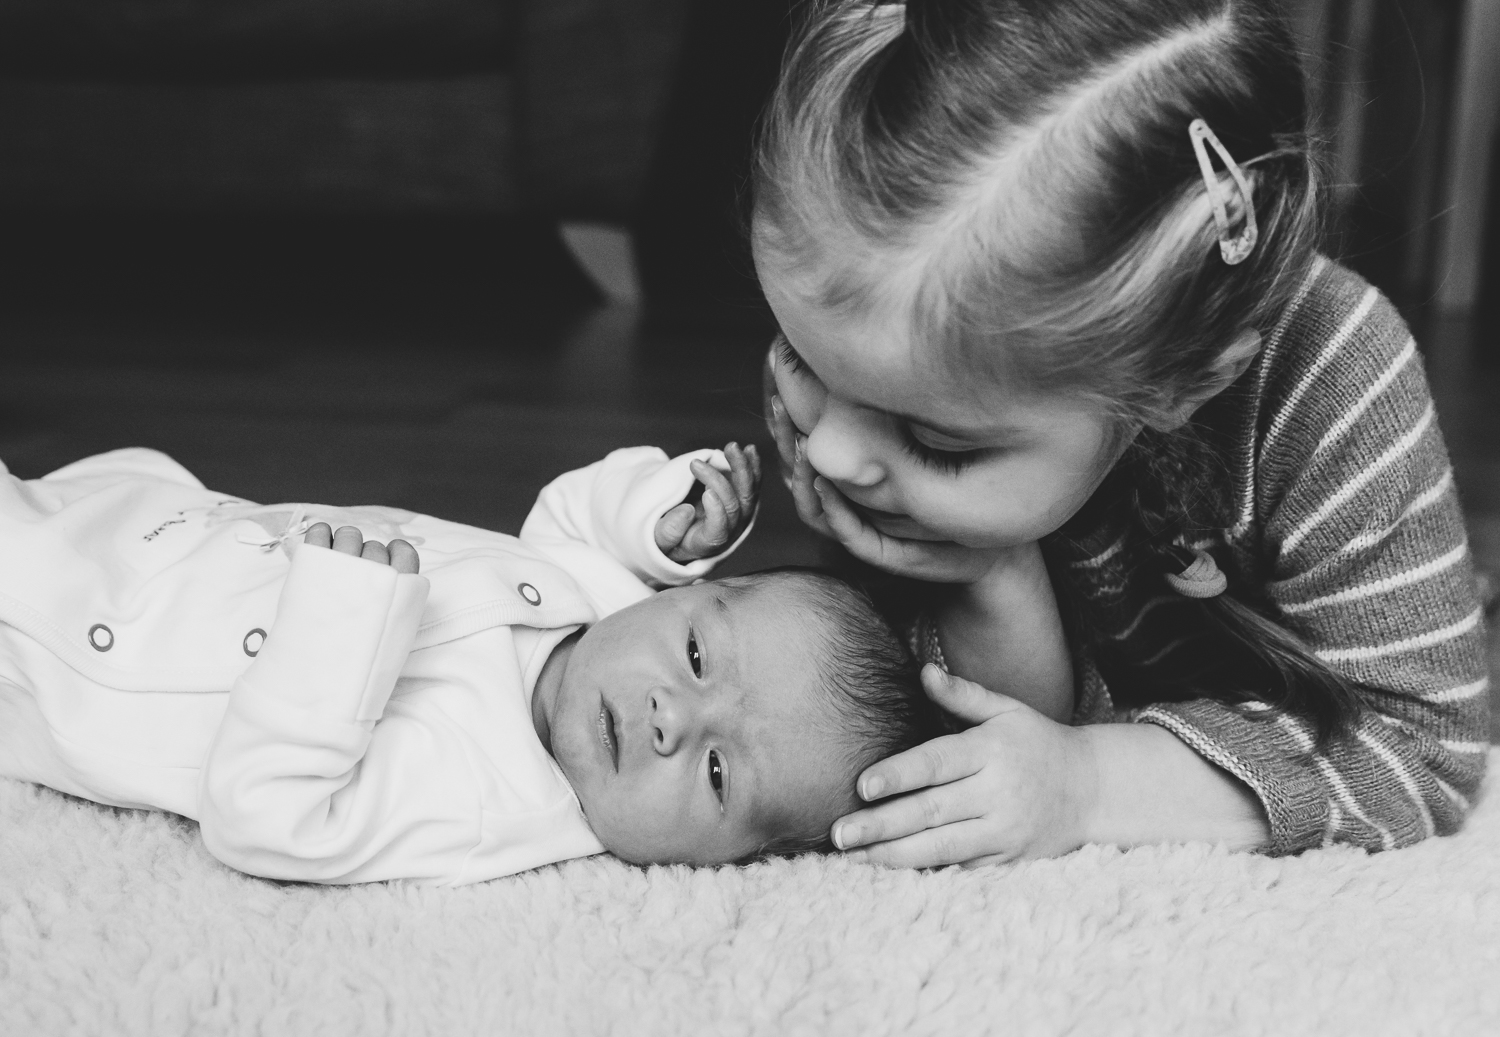 NEWBORN BABY PHOTOGRAPHY TIPS - BABY AND SISTER